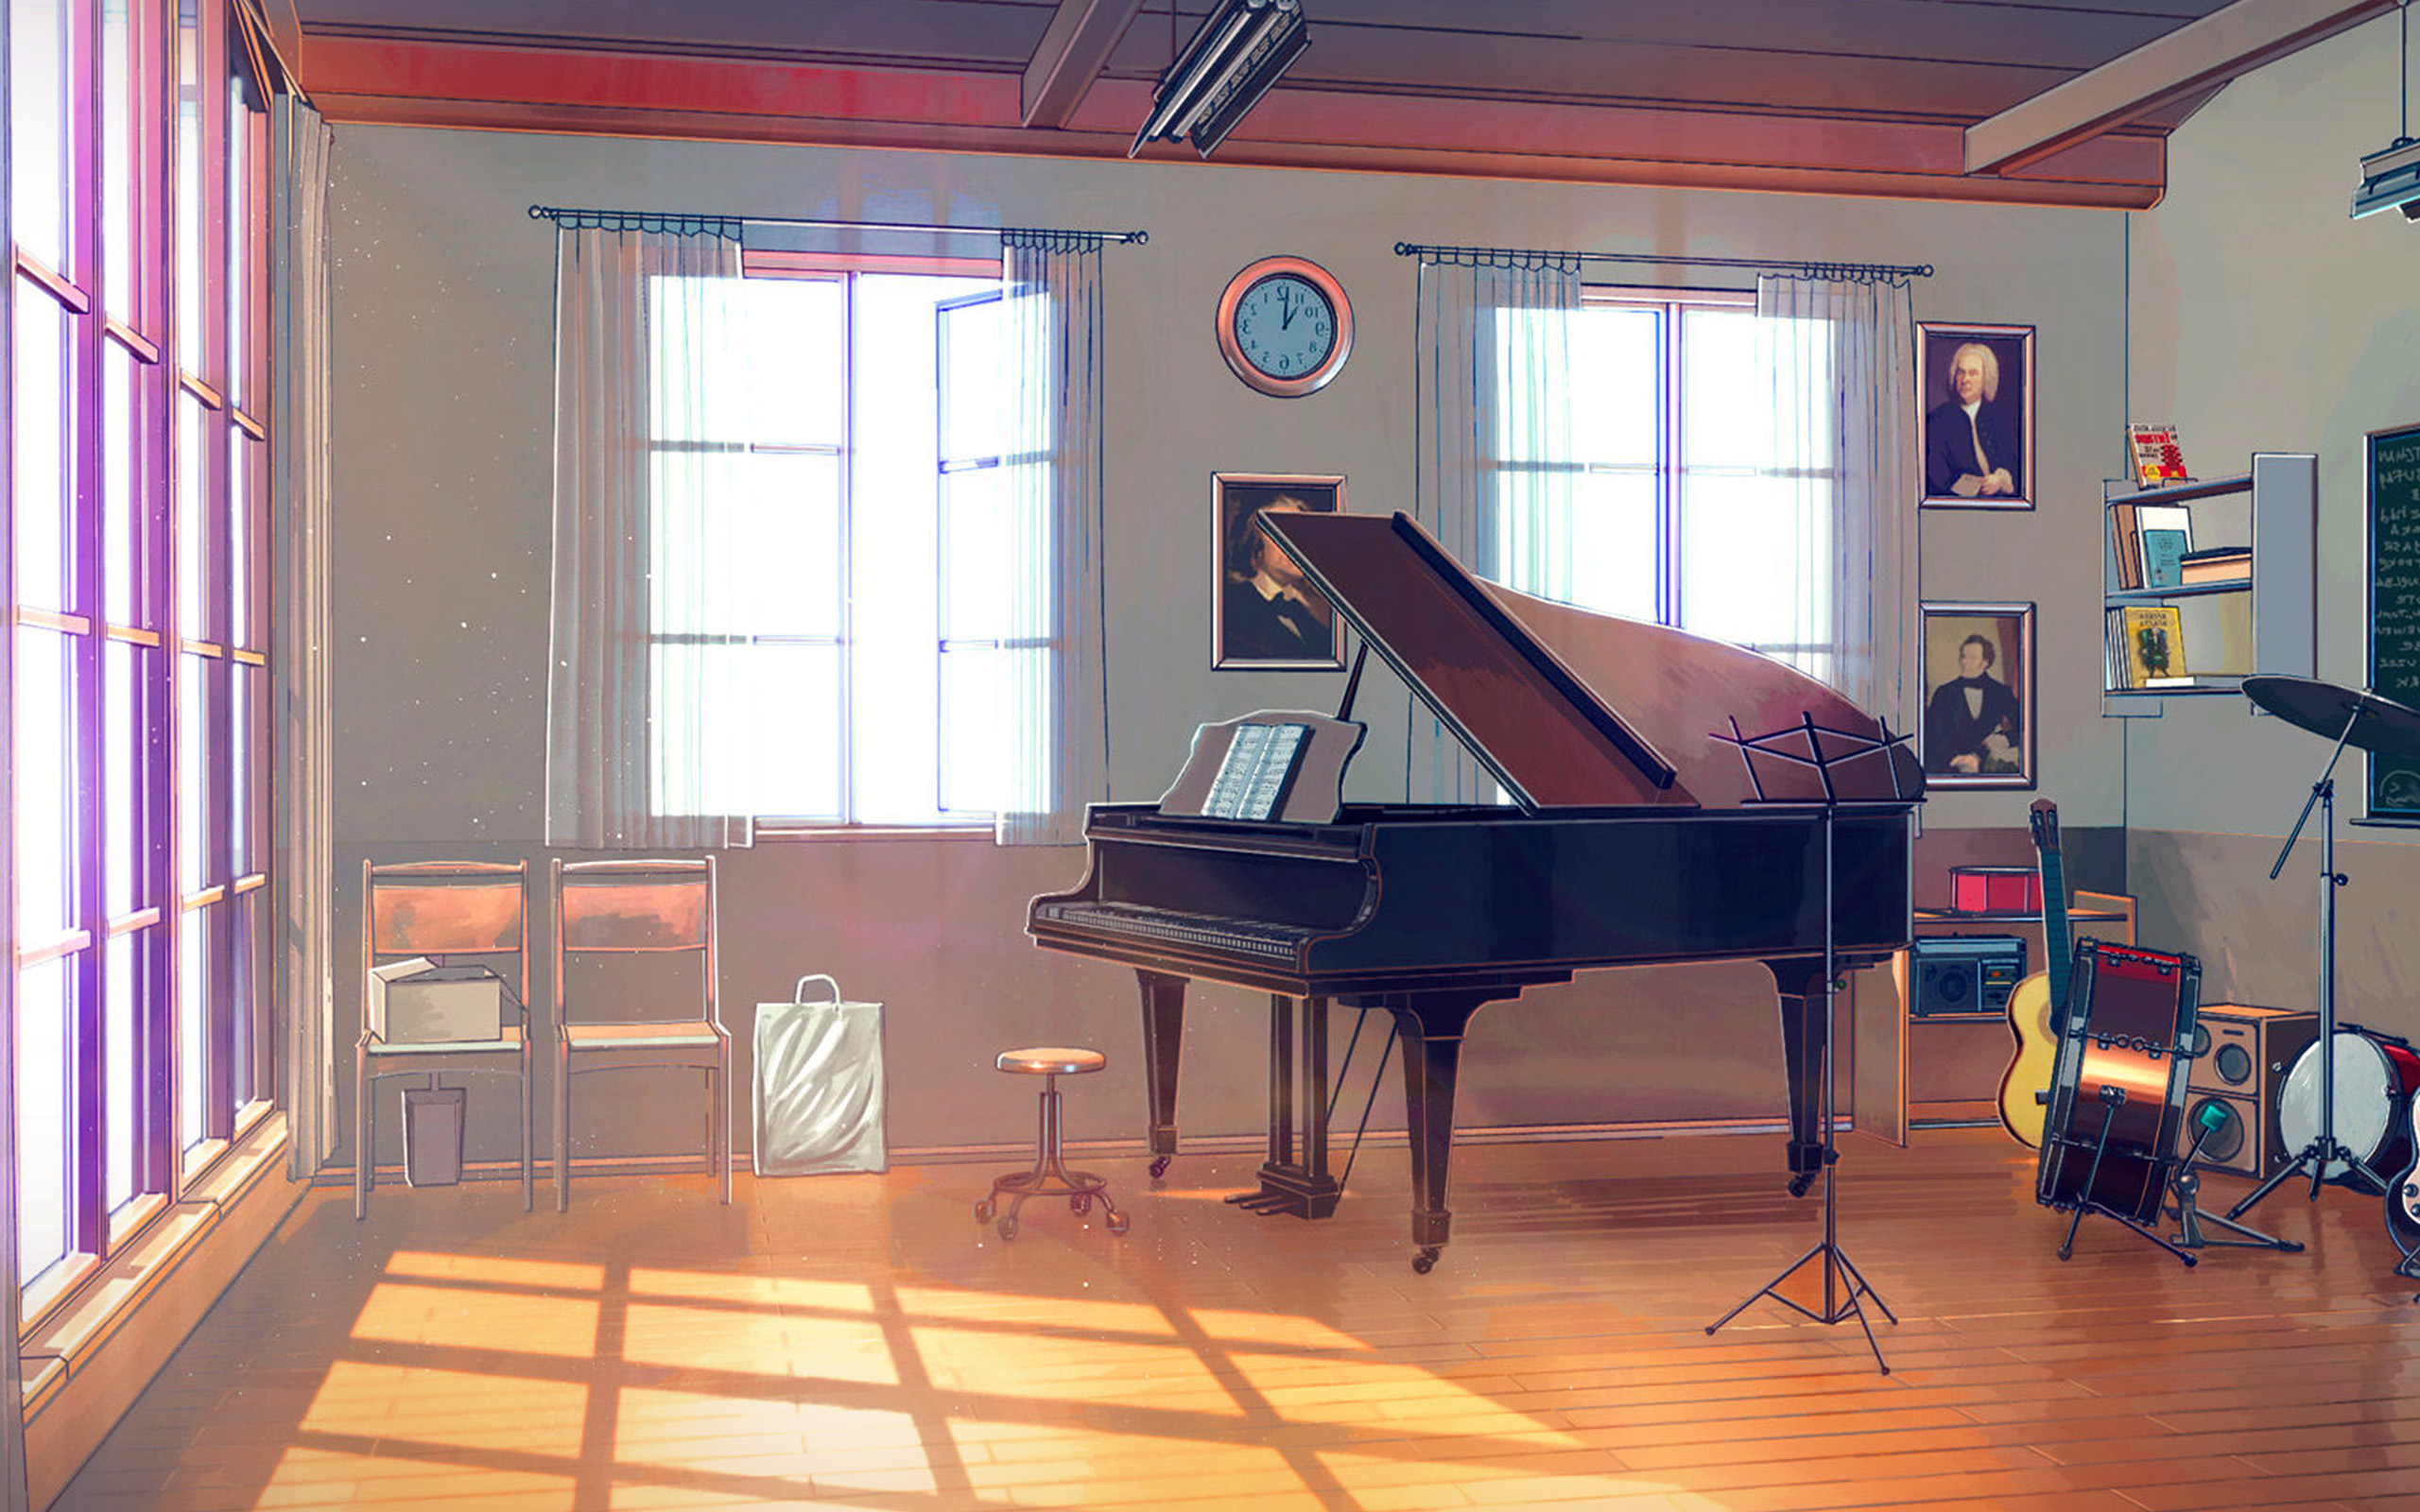 Car Wallpapers For Iphone Se Aw49 Arseniy Chebynkin Music Room Piano Illustration Art